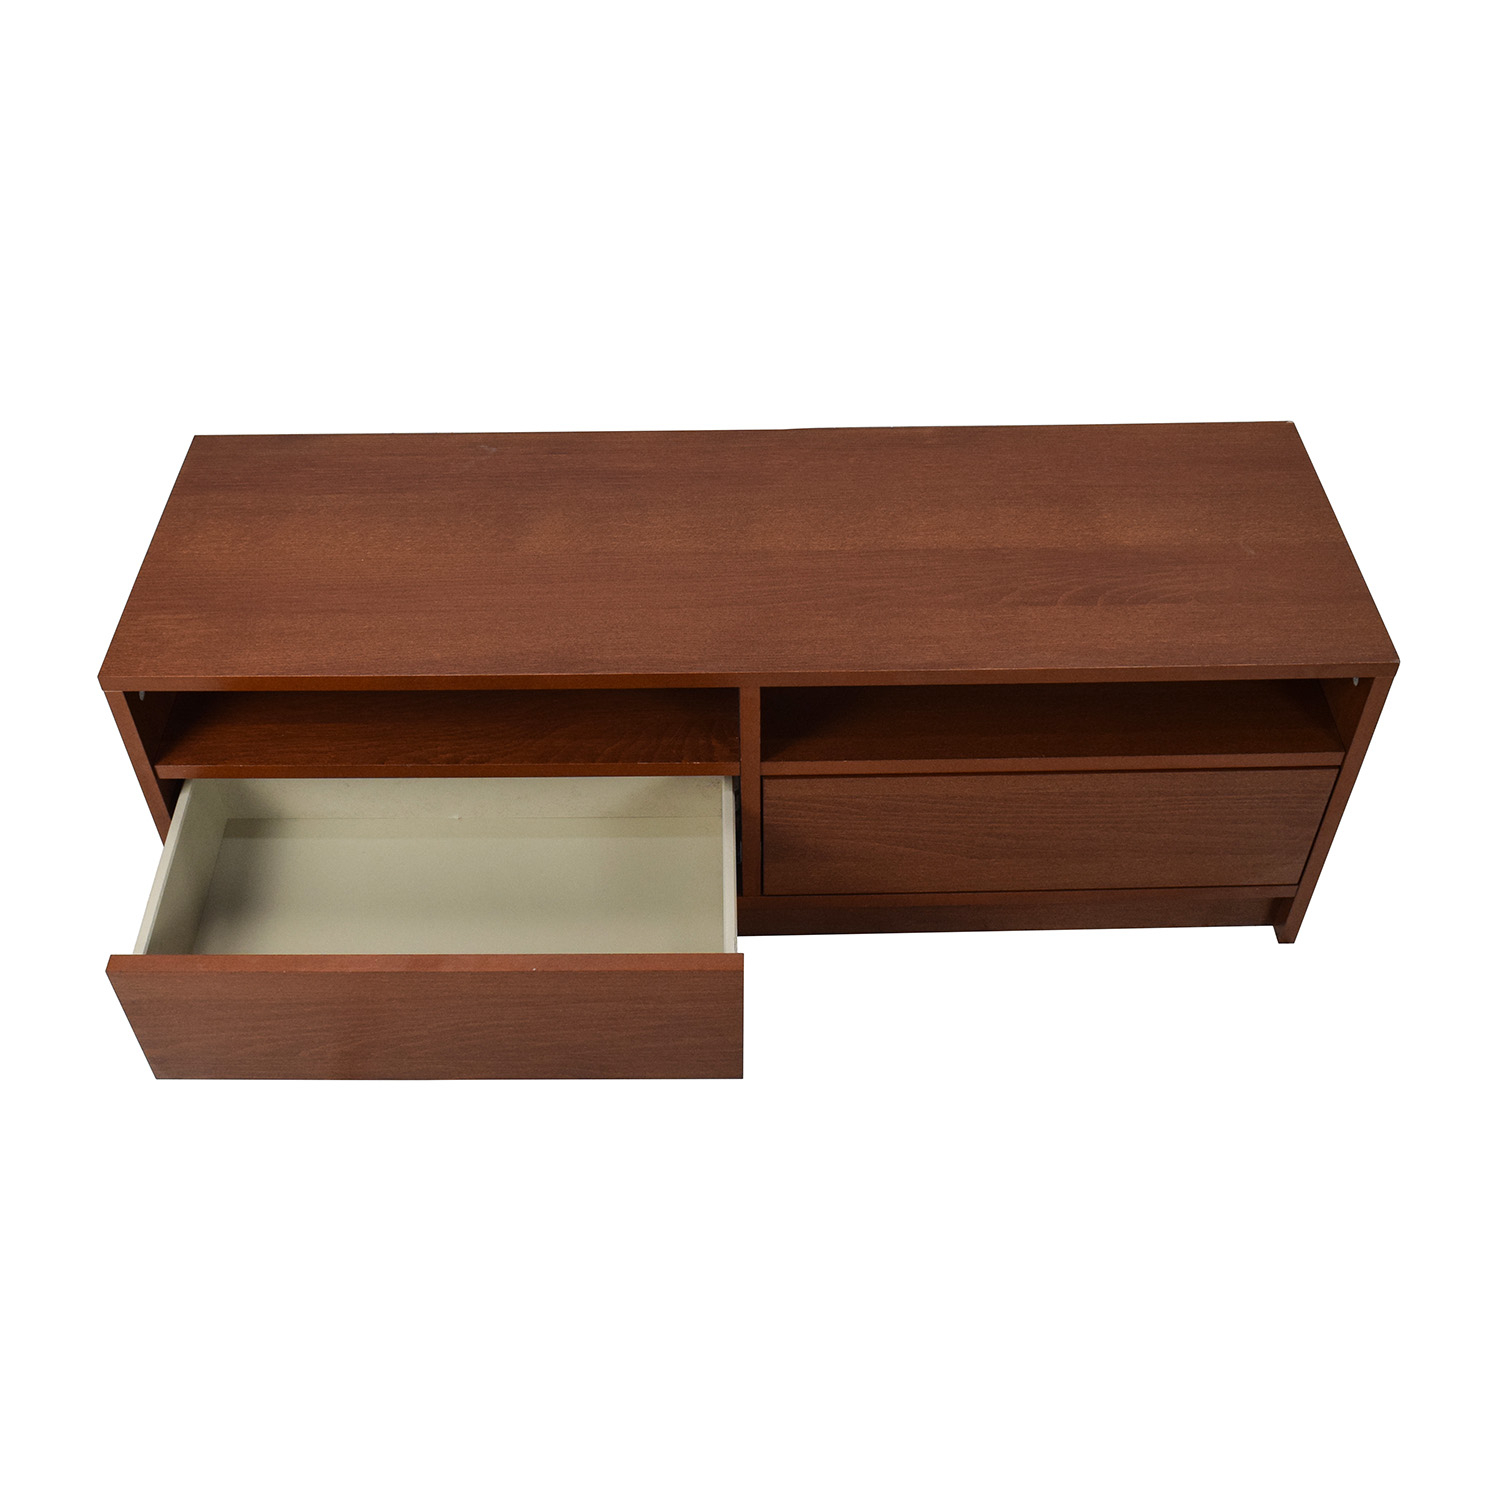 85% Off – Ikea Ikea Benno Tv Stand / Storage Within Tv Stands At Ikea (View 15 of 15)